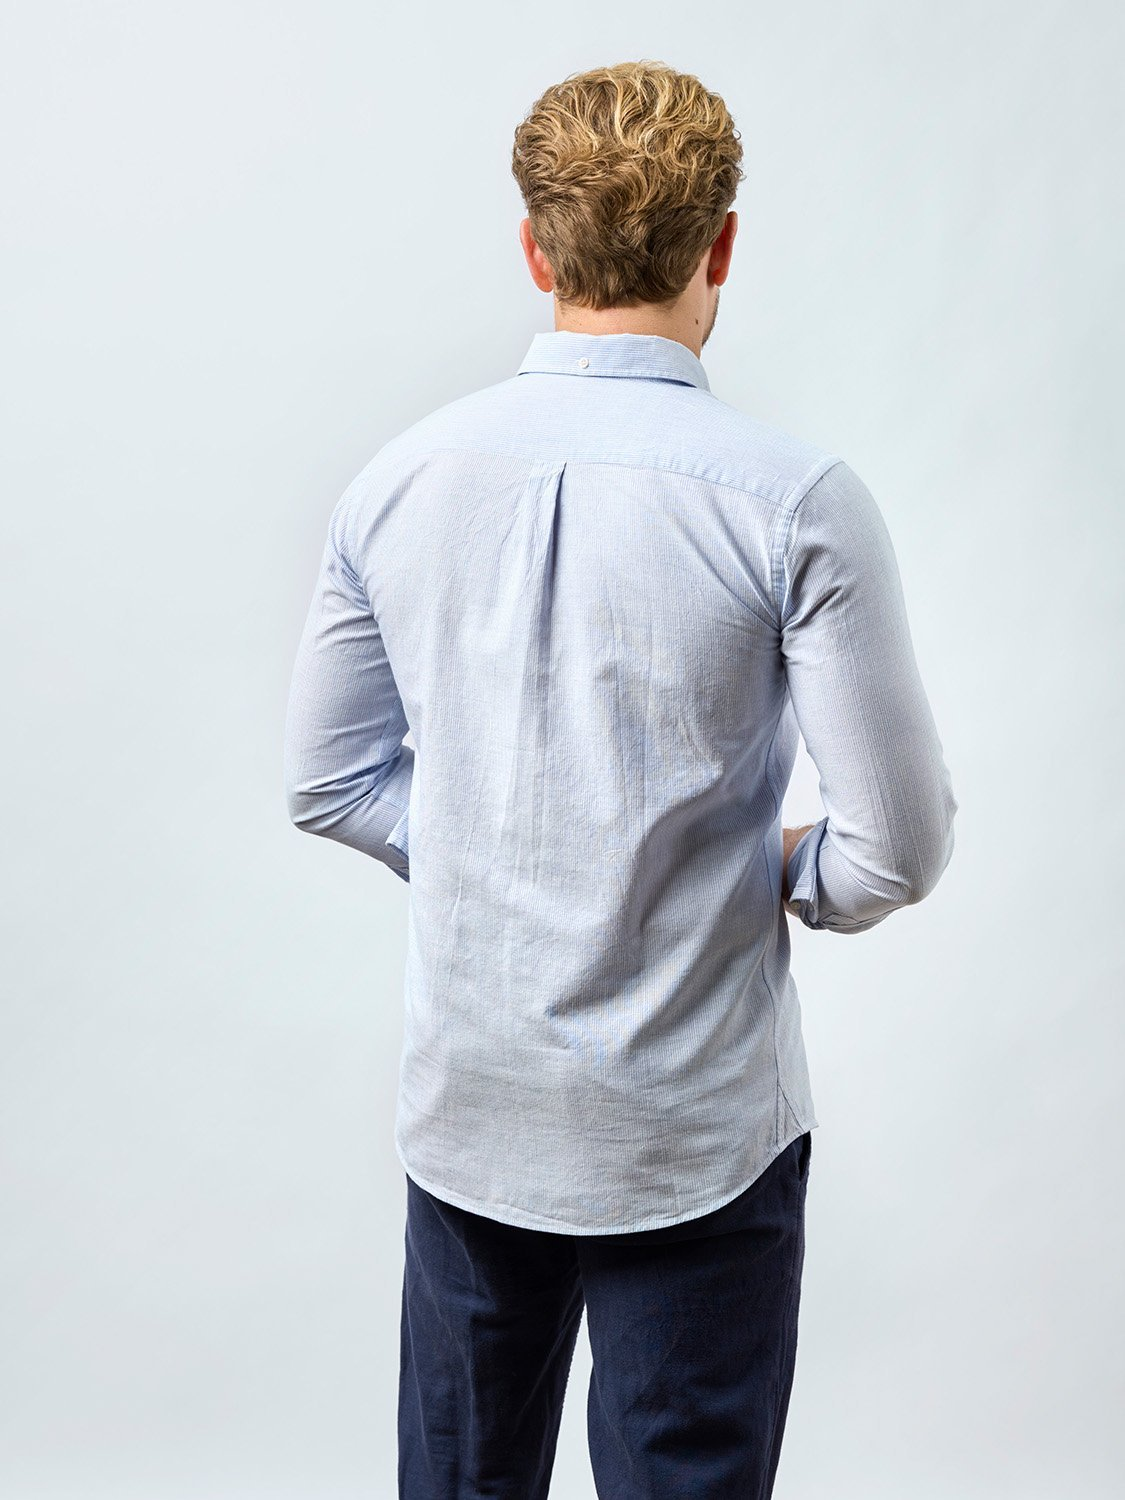 carpasus sustainable organic cotton shirt bernina blue. Nachhaltiges Carpasus Hemd Bernina Blau aus Bio Baumwolle